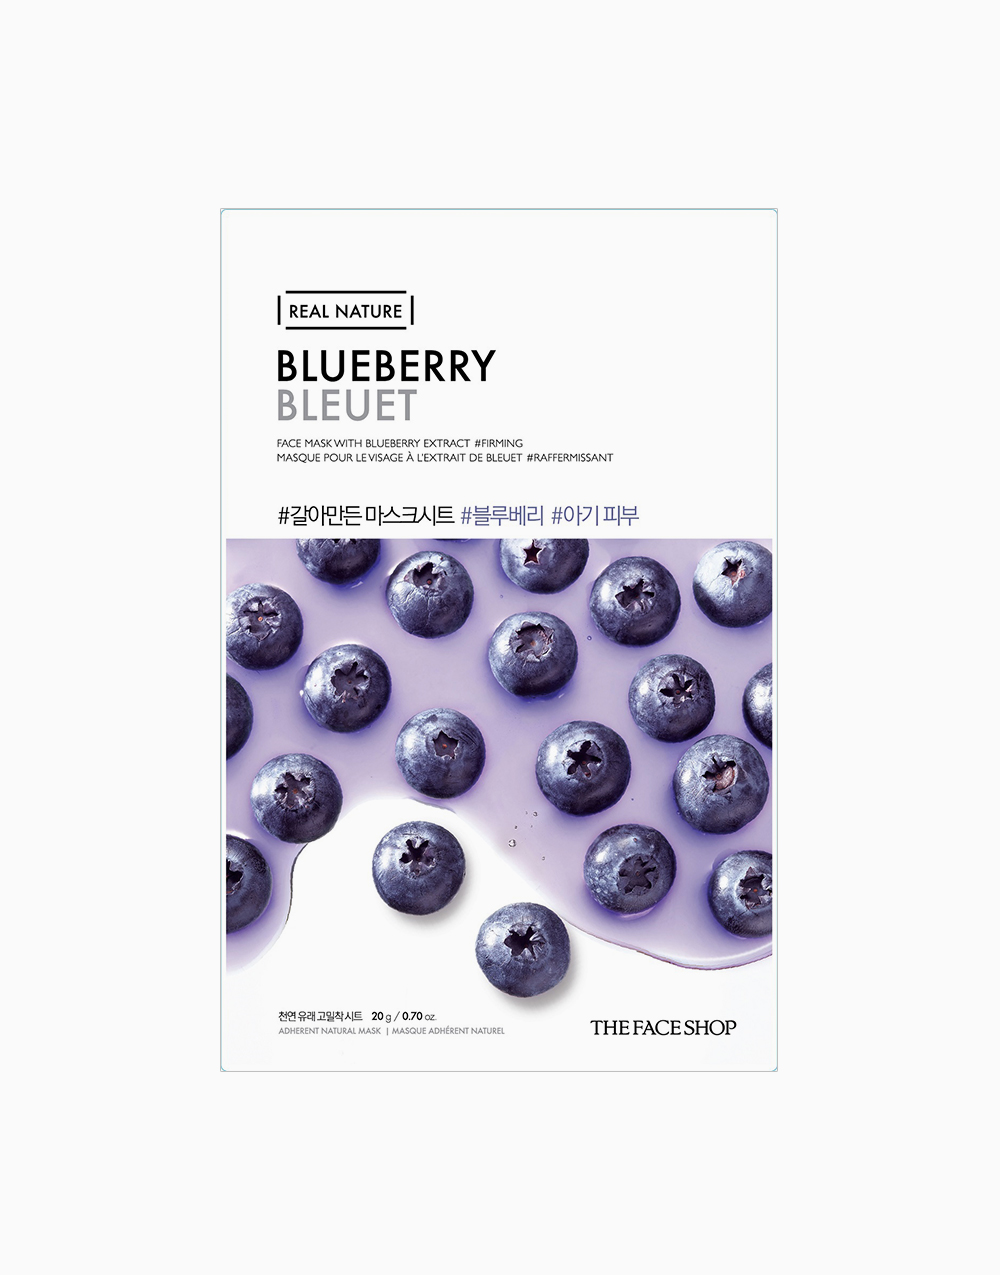 Real Nature Blueberry Face Mask by The Face Shop